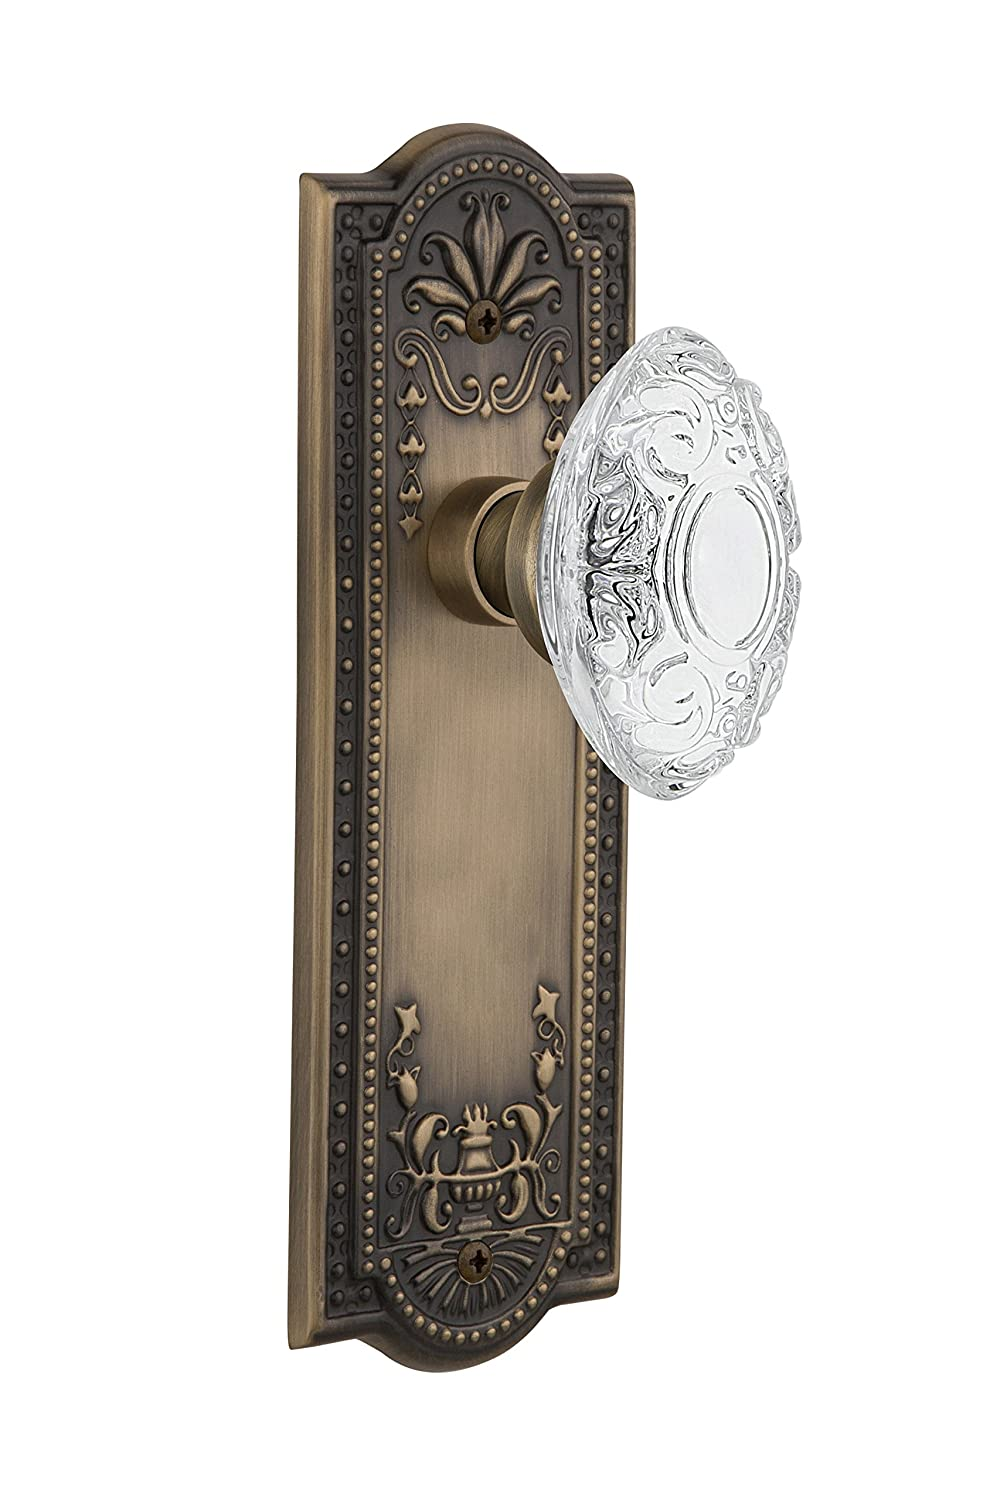 Nostalgic Warehouse 753908 Meadows Plate with Crystal Victorian Knob Passage Backset Size 2.375 Antique Brass